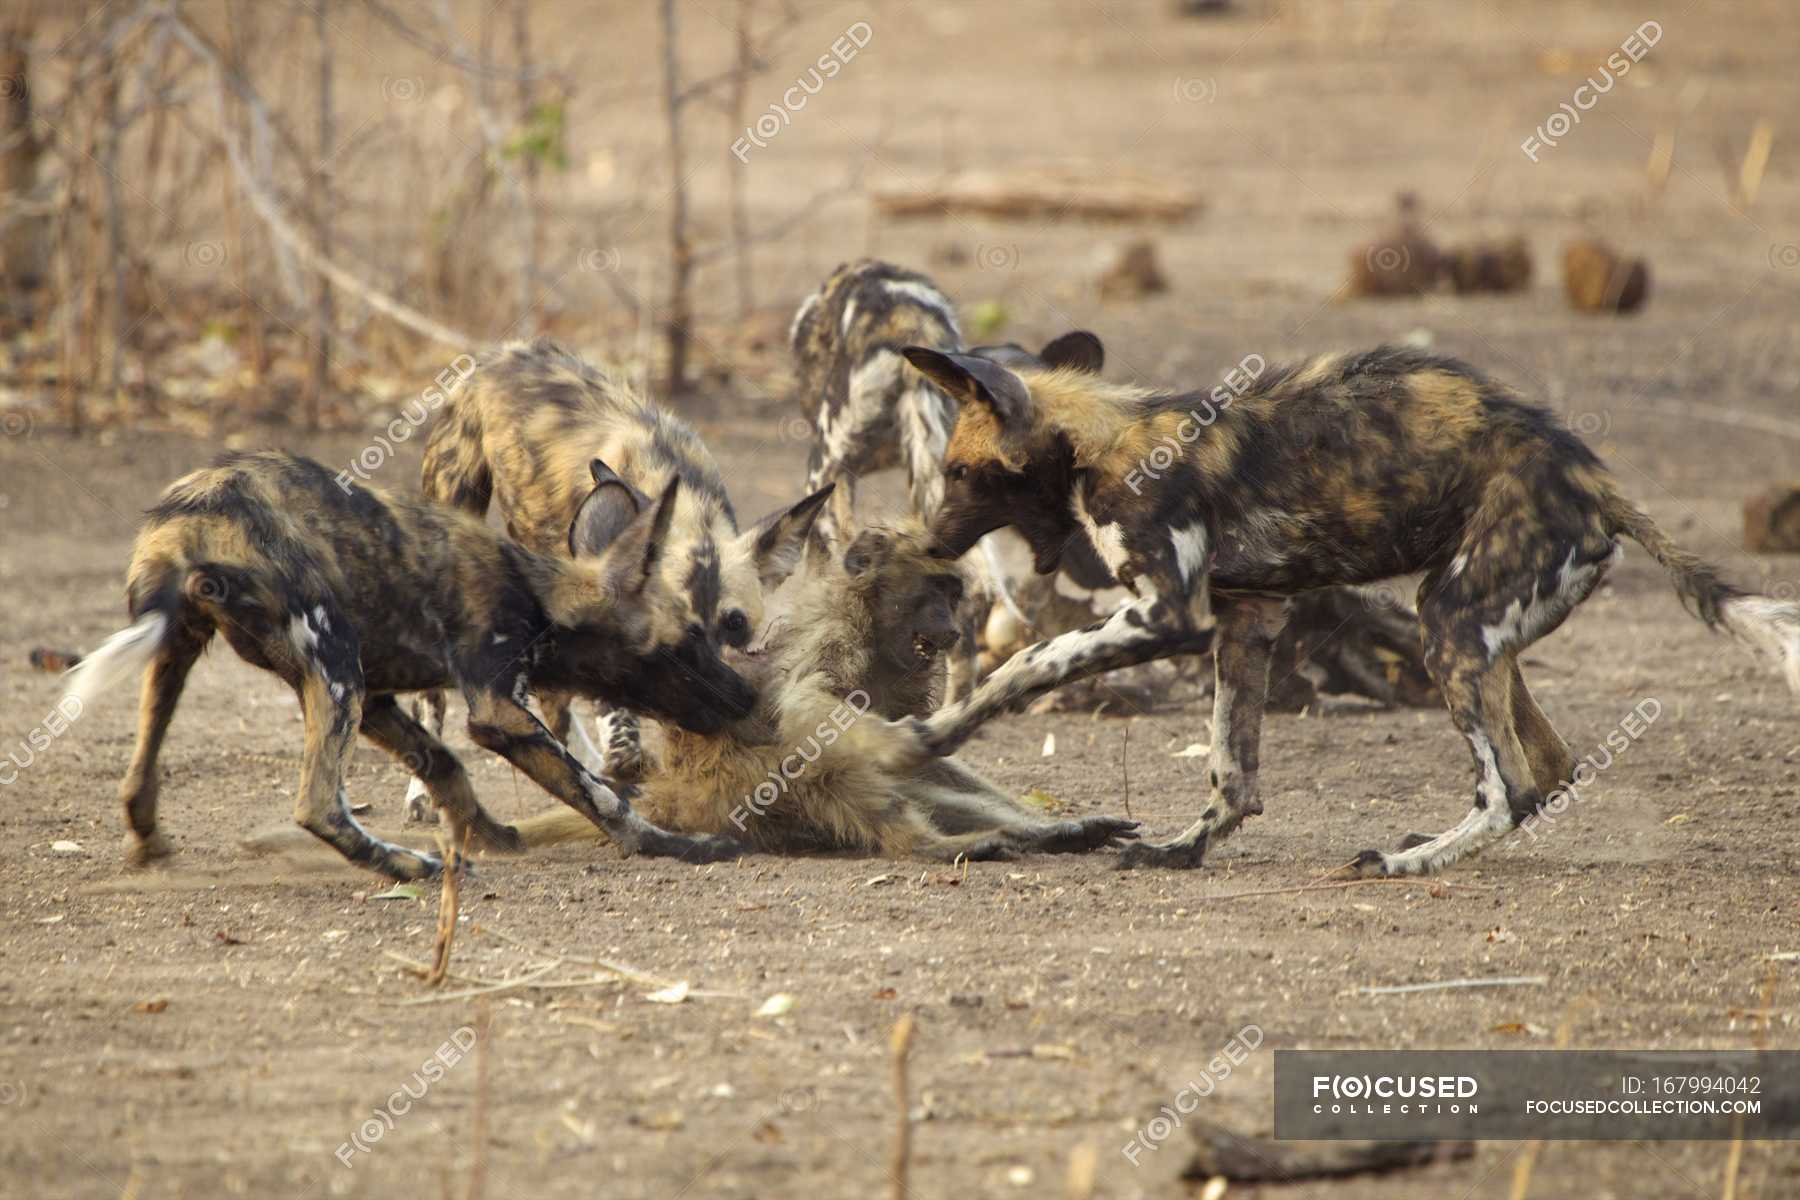 African Wild Dogs Or Lycaon Pictus Attacking Juvenile Baboons In Mana Pools National Park Zimbabwe Travel Strength Stock Photo 167994042